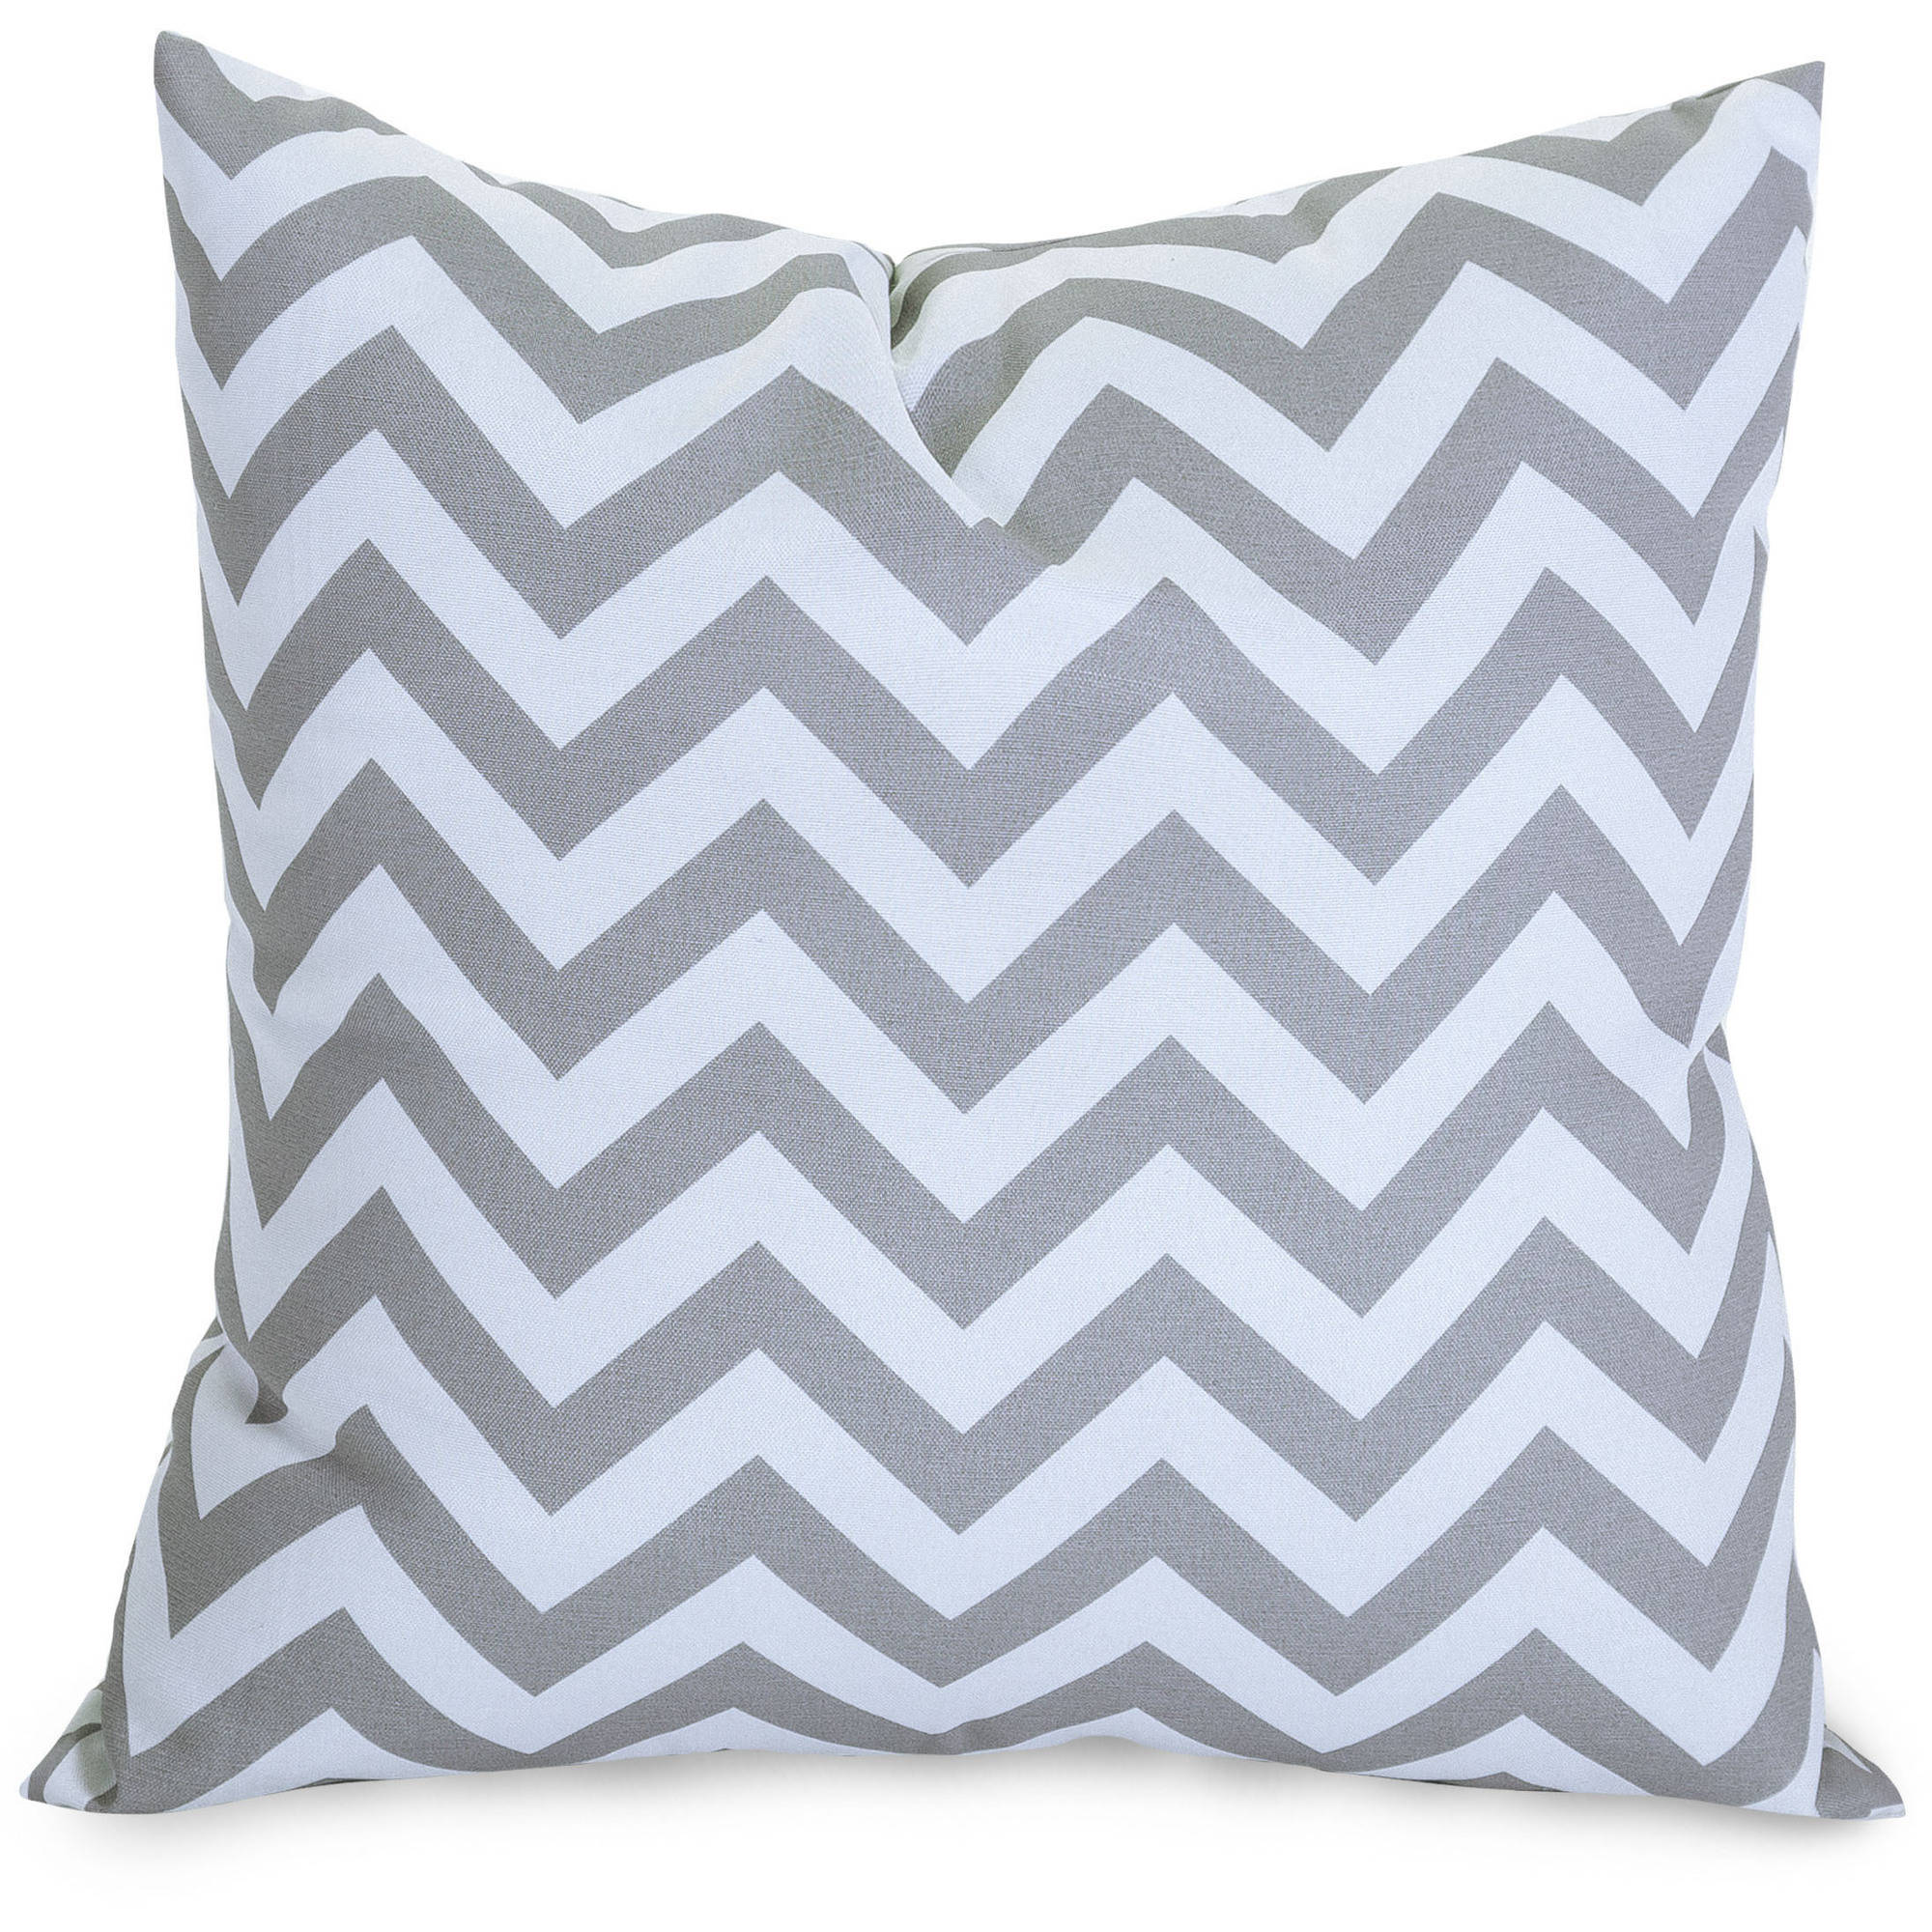 "Majestic Home Goods Chevron Large Decorative Pillow, 20"" x 20"", Indoor/Outdoor"